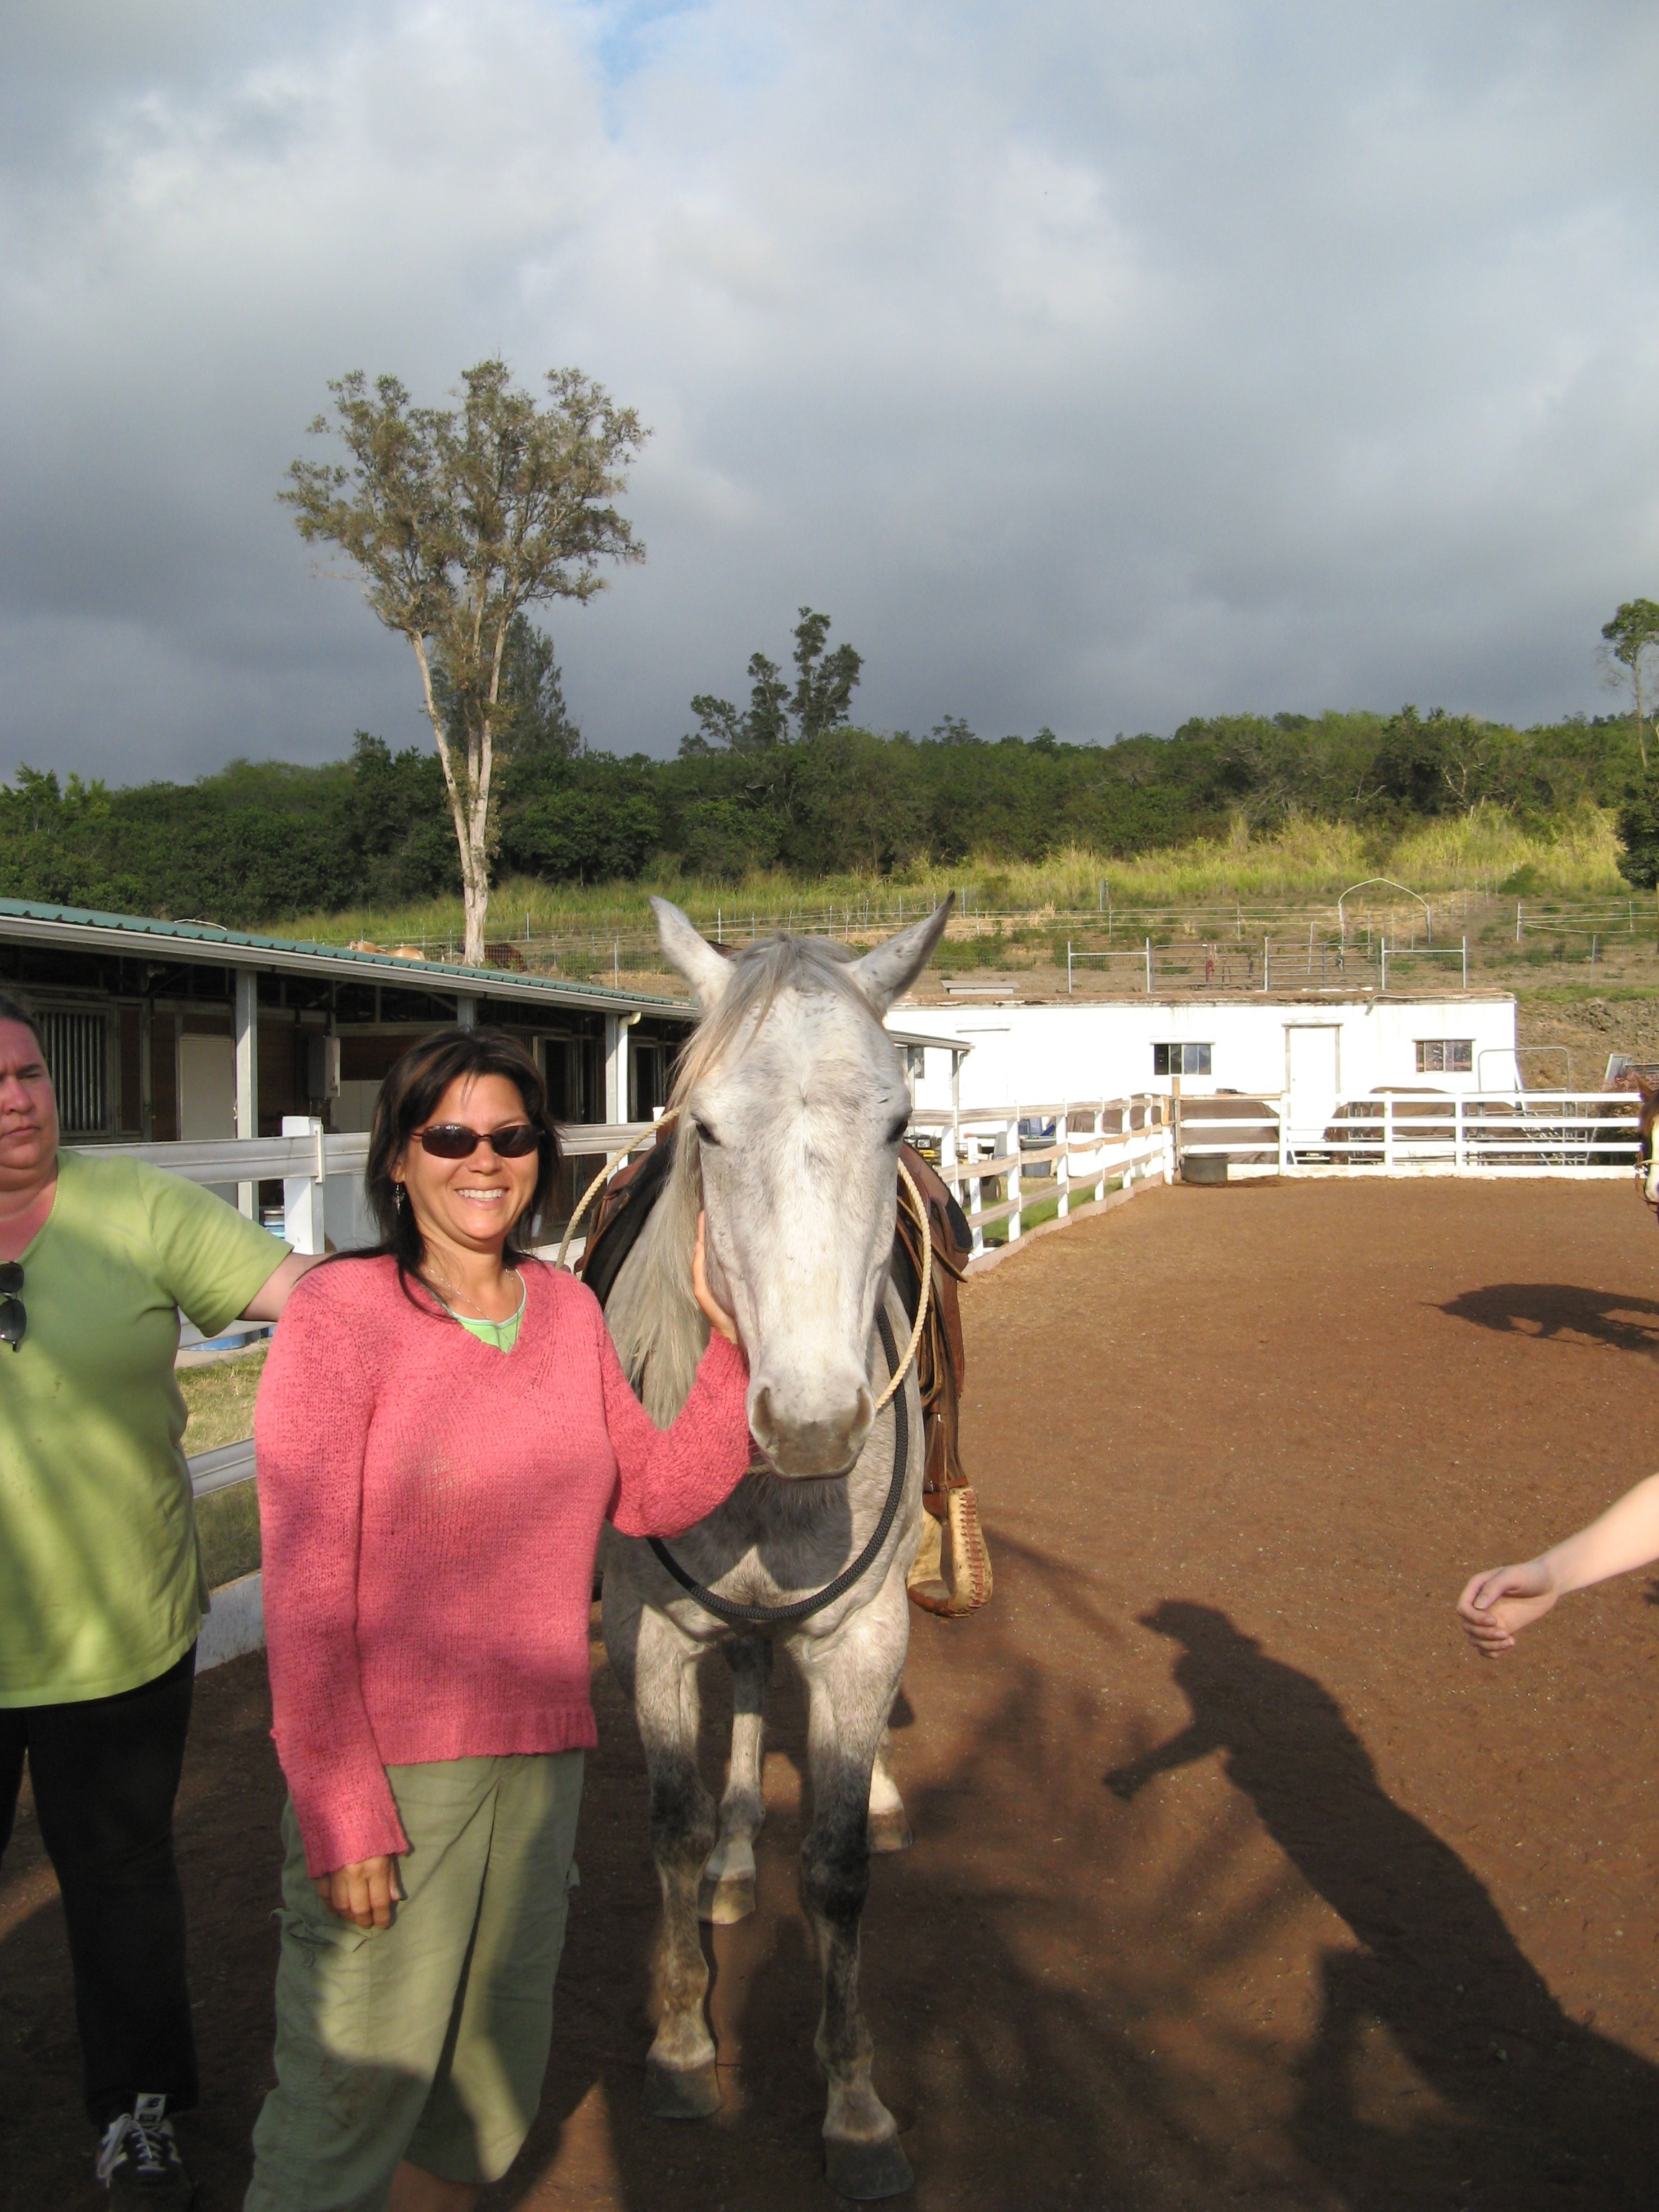 At Horse Play Stables in the lower arena. In the upper arena, you feel as if you are floating over the Pacific. Here you can see crops growing in the background going up the mountain.